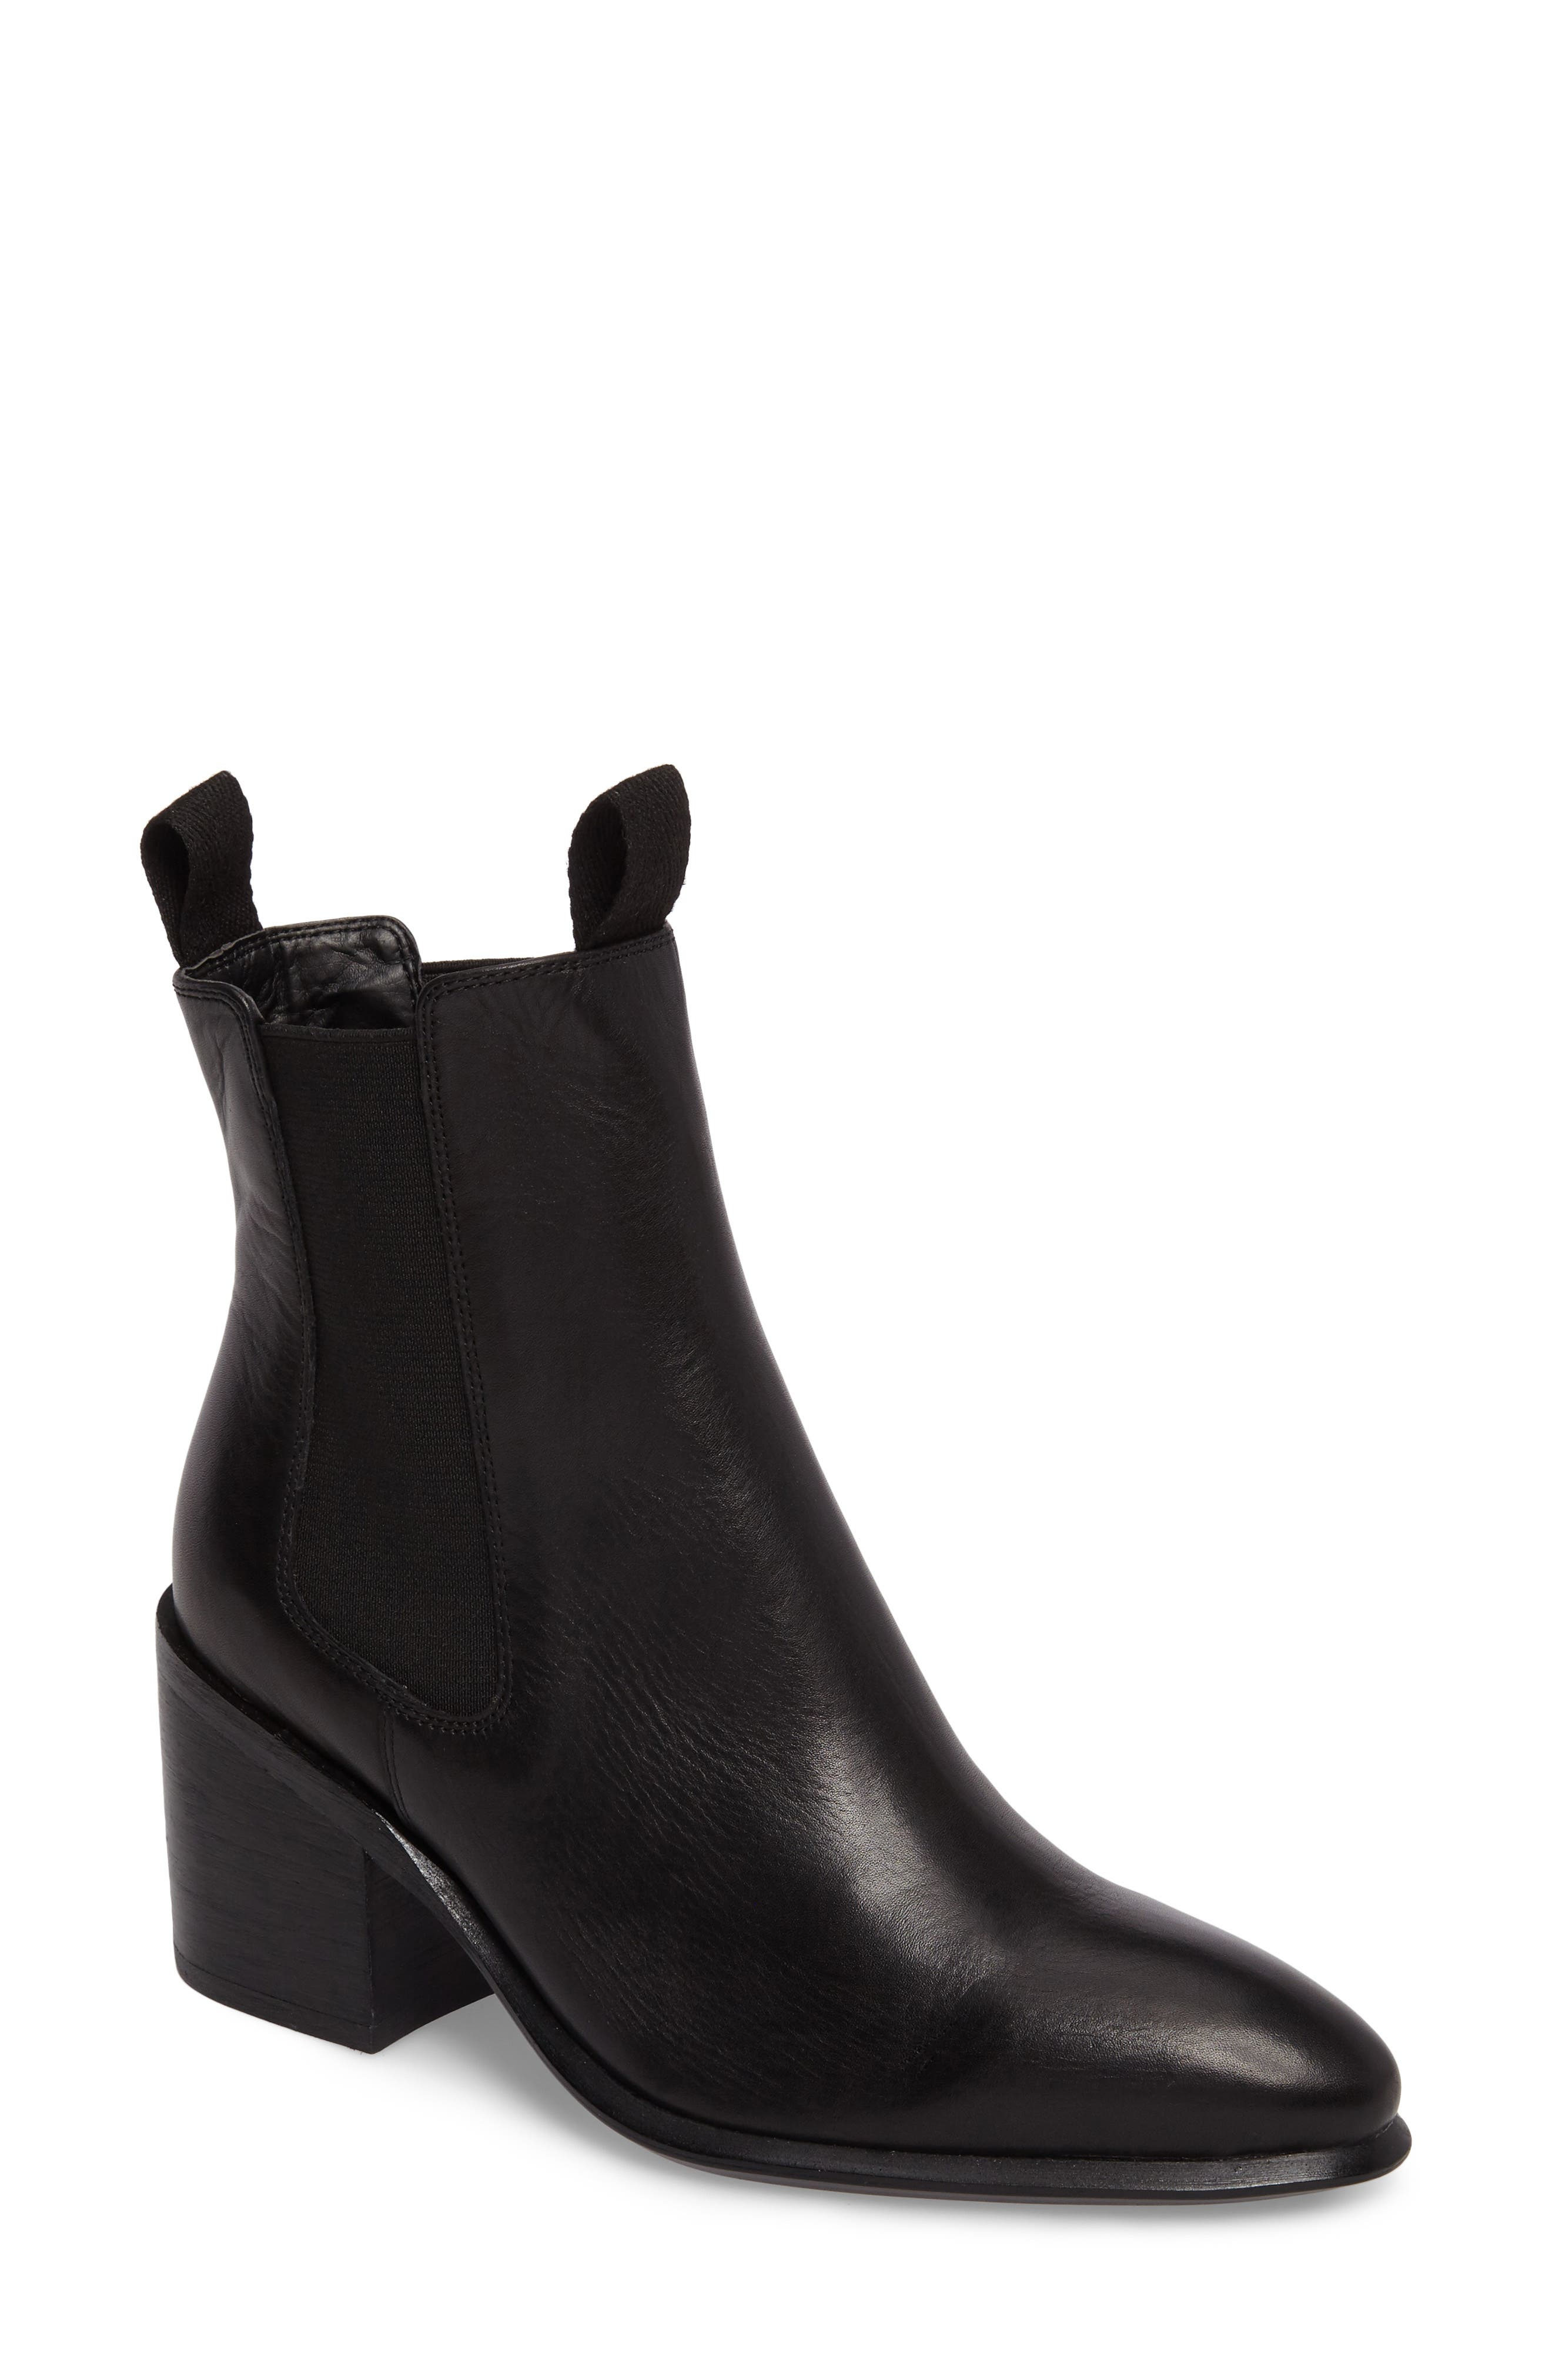 Alternate Image 1 Selected - Tony Bianco Hampton Bootie (Women)